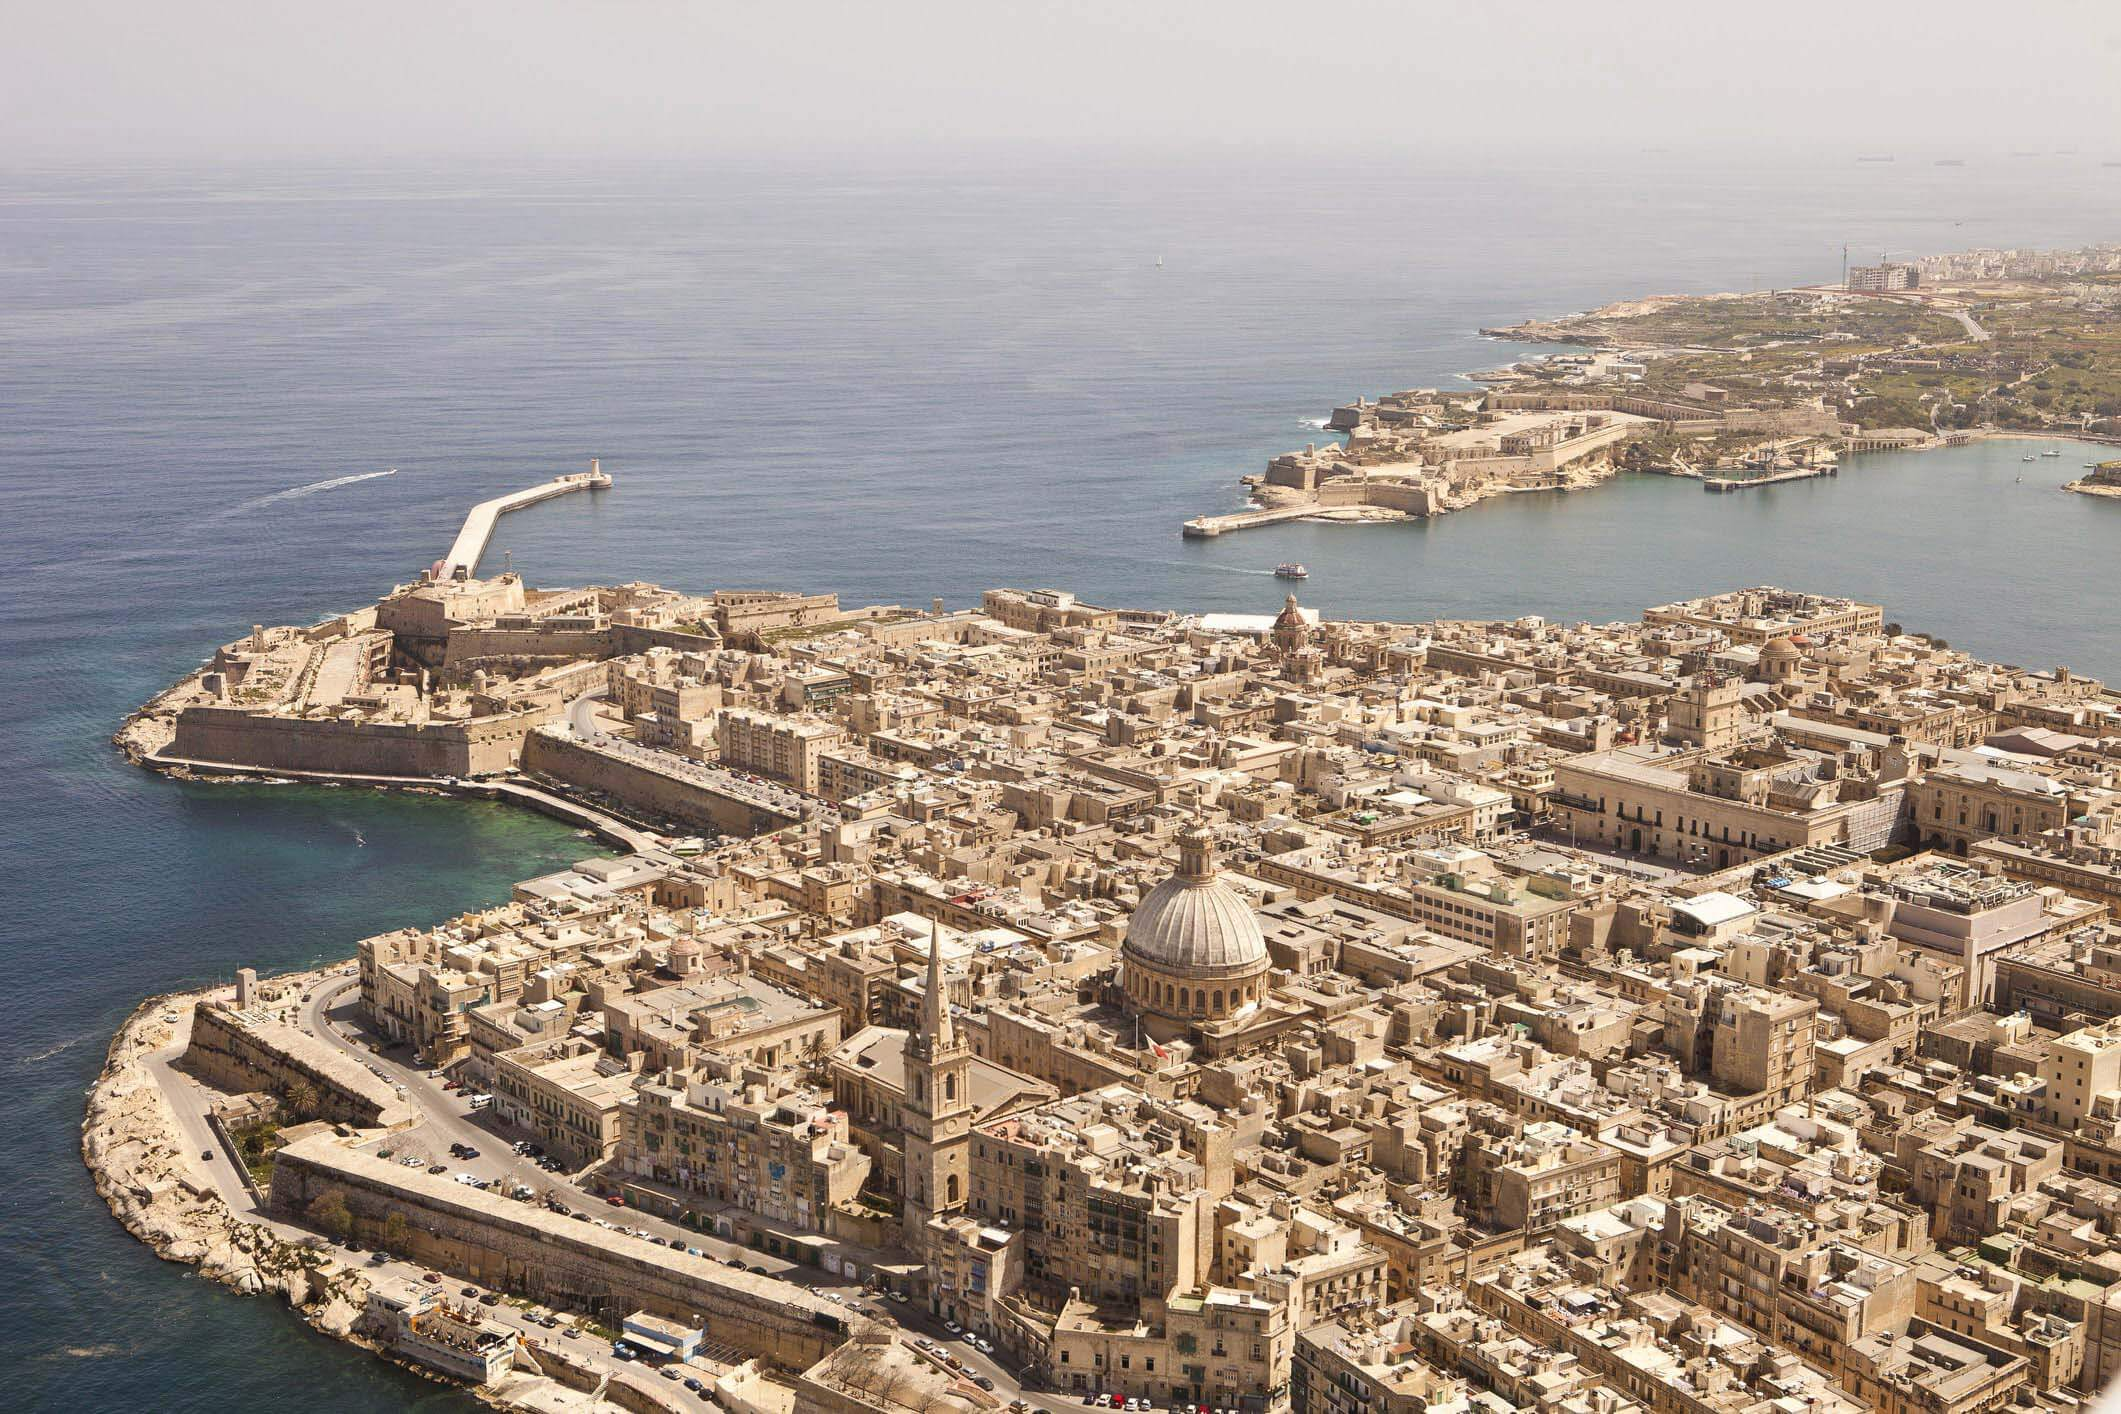 Aerial View of Valletta in Malta